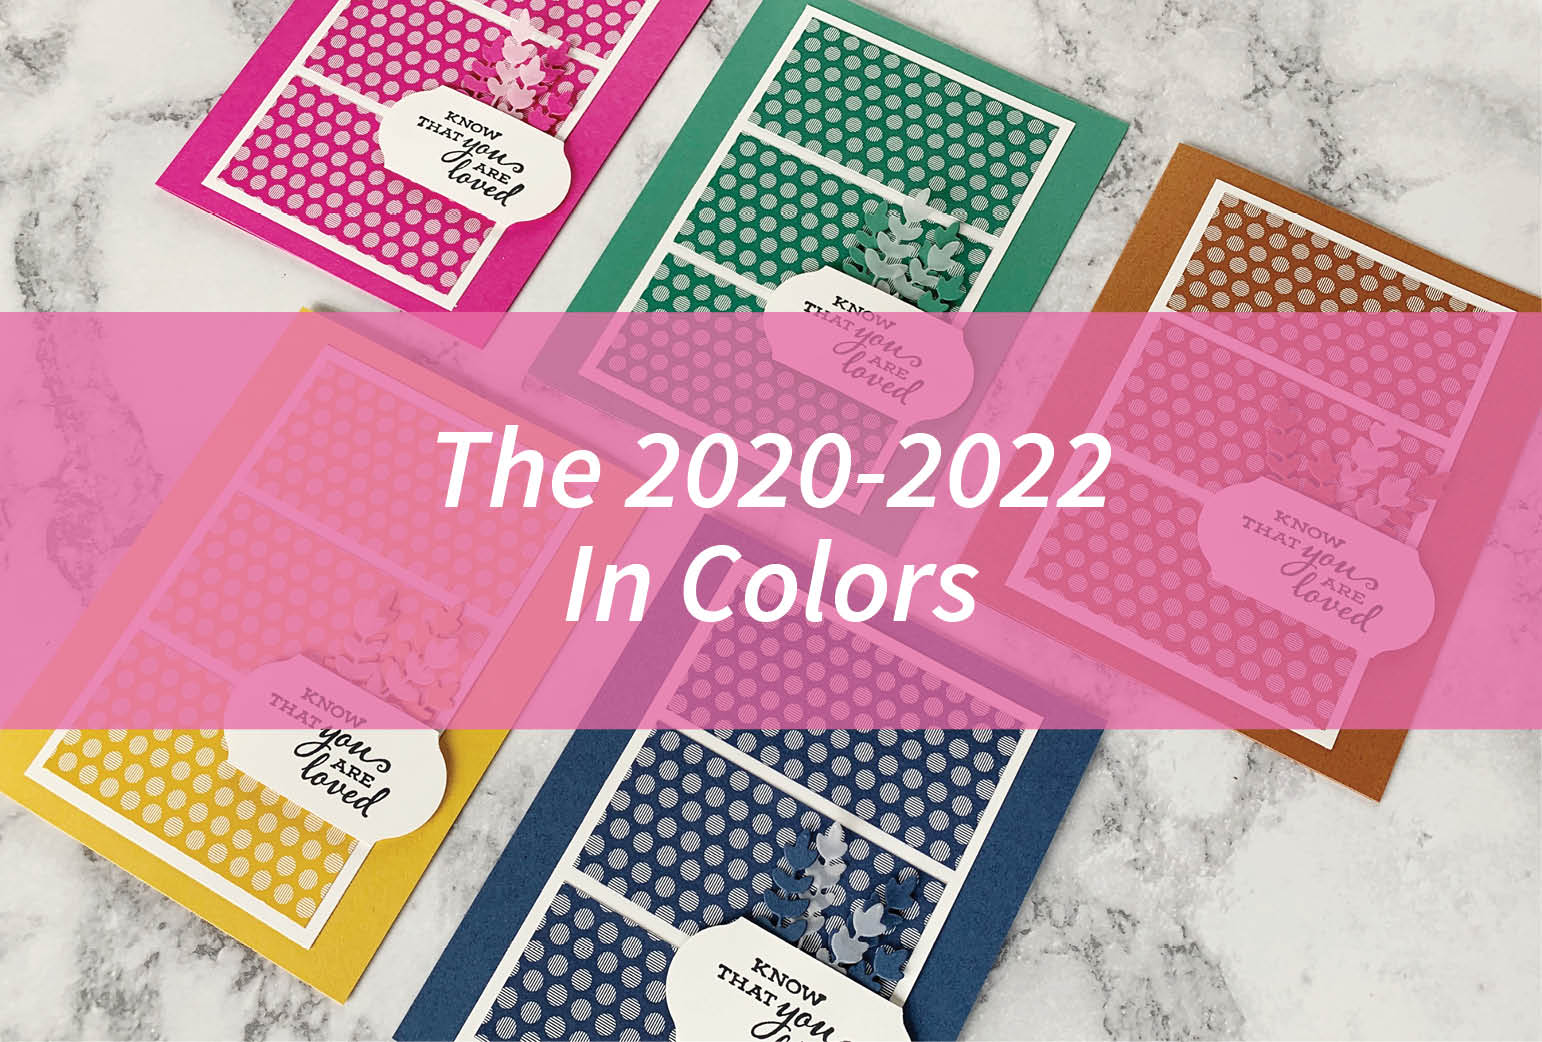 The 2020-2022 In Colors